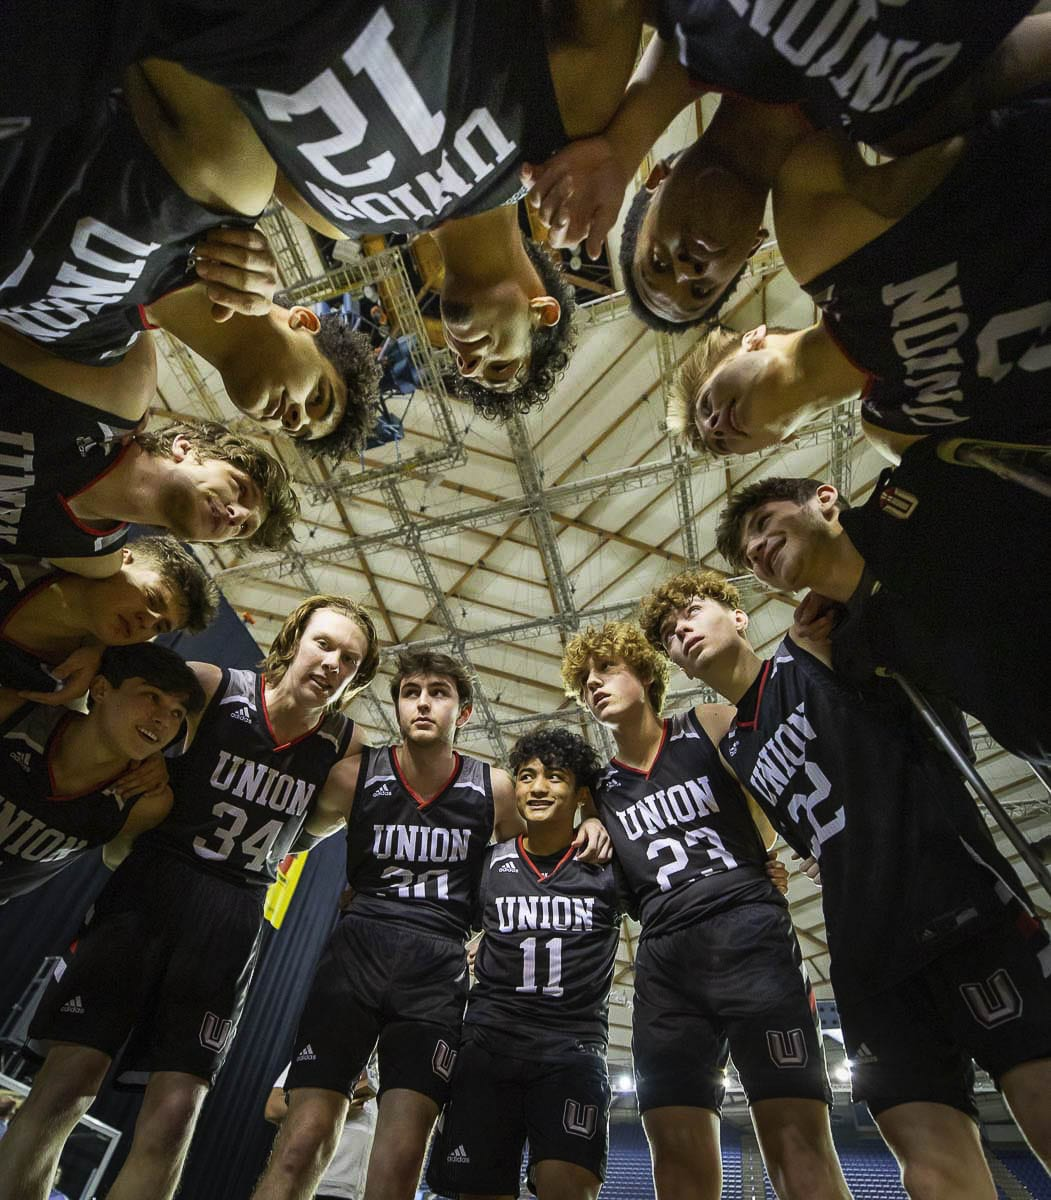 The Union boys basketball team took home the third-place trophy, playing on the final day of the last WIAA-sanctioned postseason of 2020. Photo courtesy Heather Tianen